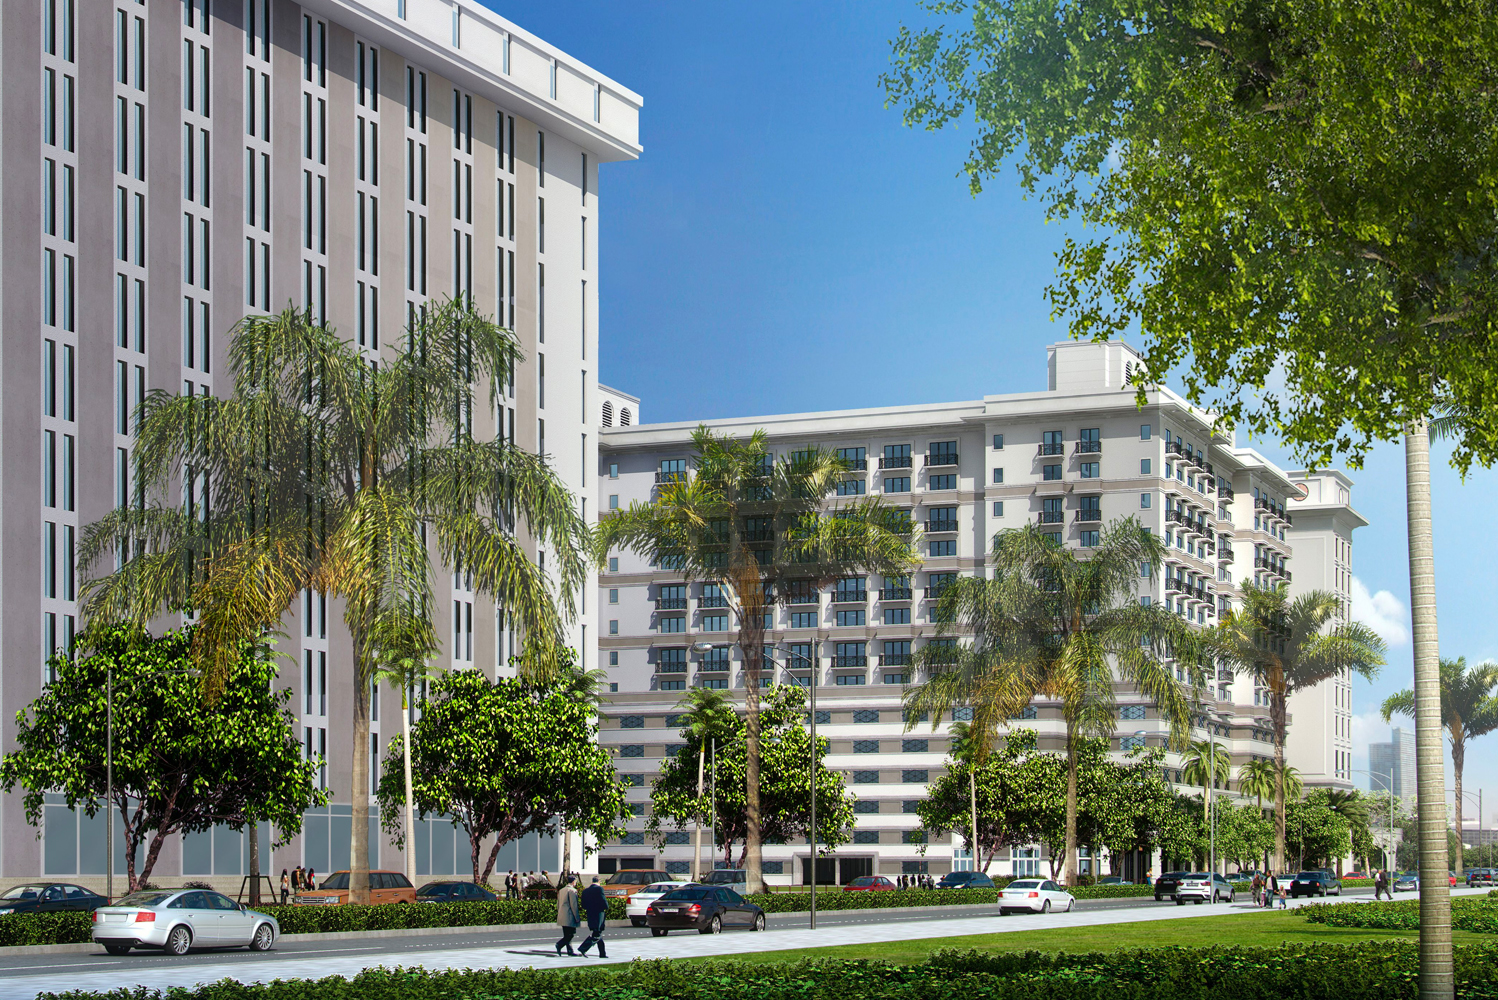 THēsis Hotel Miami will be located at 1350 S. Dixie Highway, directly across the street from the University of Miami and with access to public transportation through the pedestrian bridge across US-1.